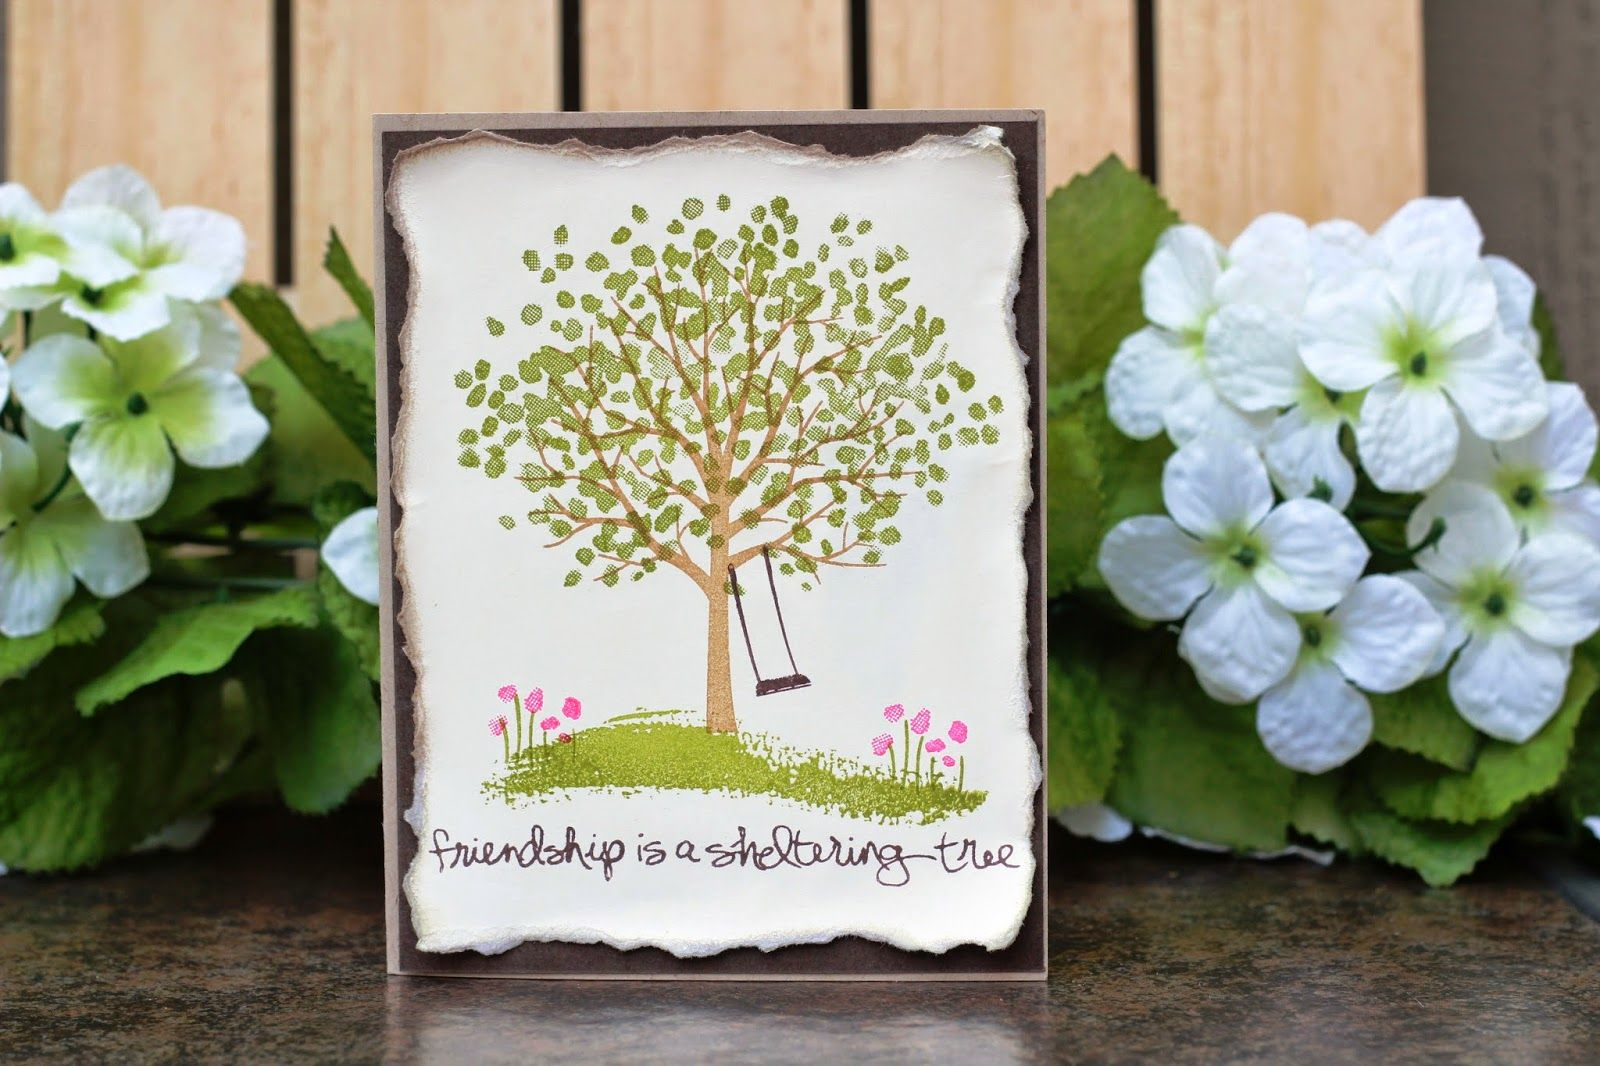 Sheltering tree friendship card created by the stampin b